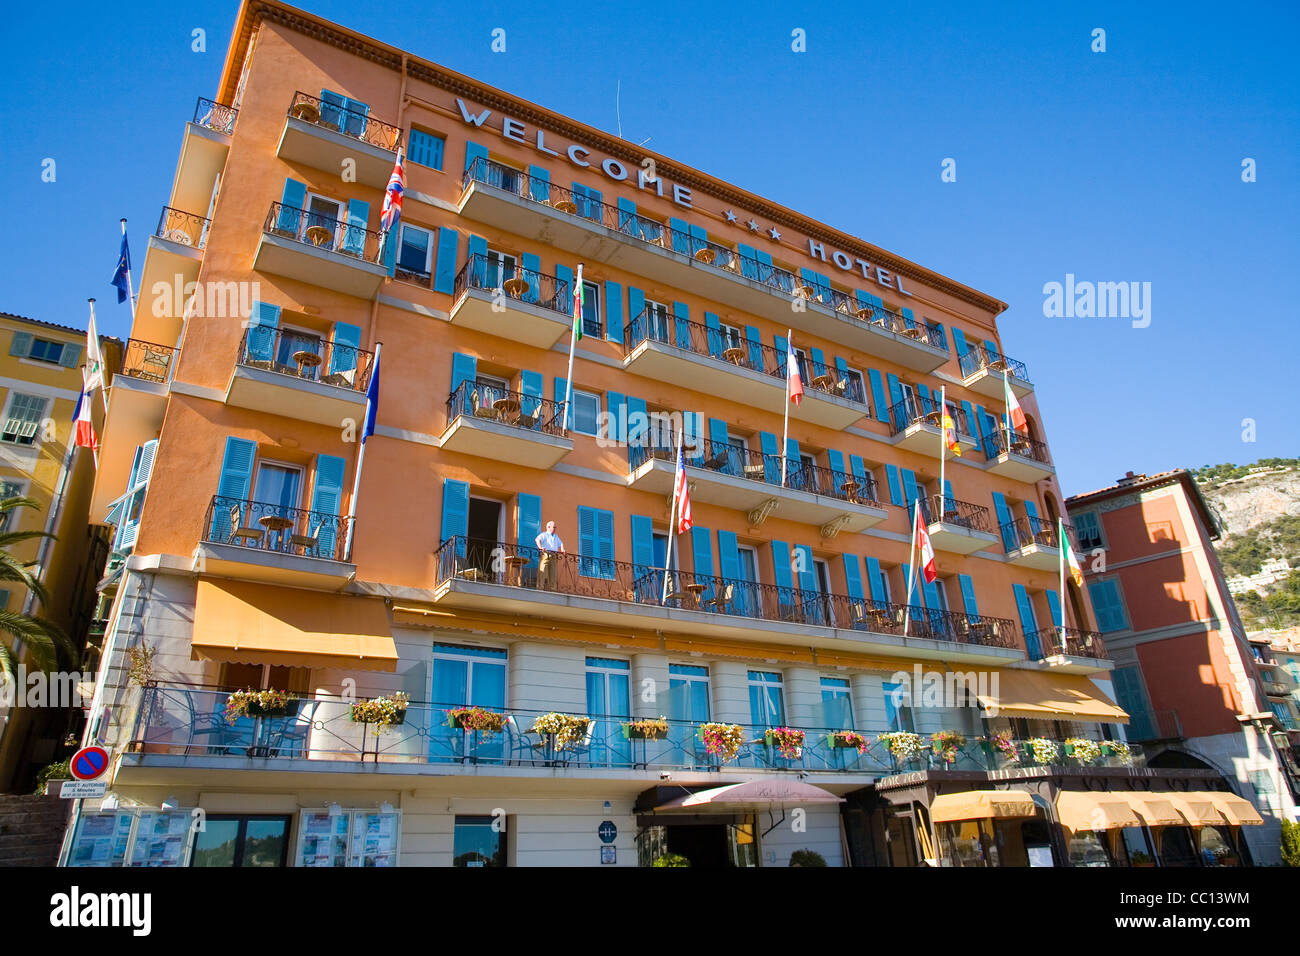 Best Hotels with a Fitness Room in Maritime Alps | Sygic ...